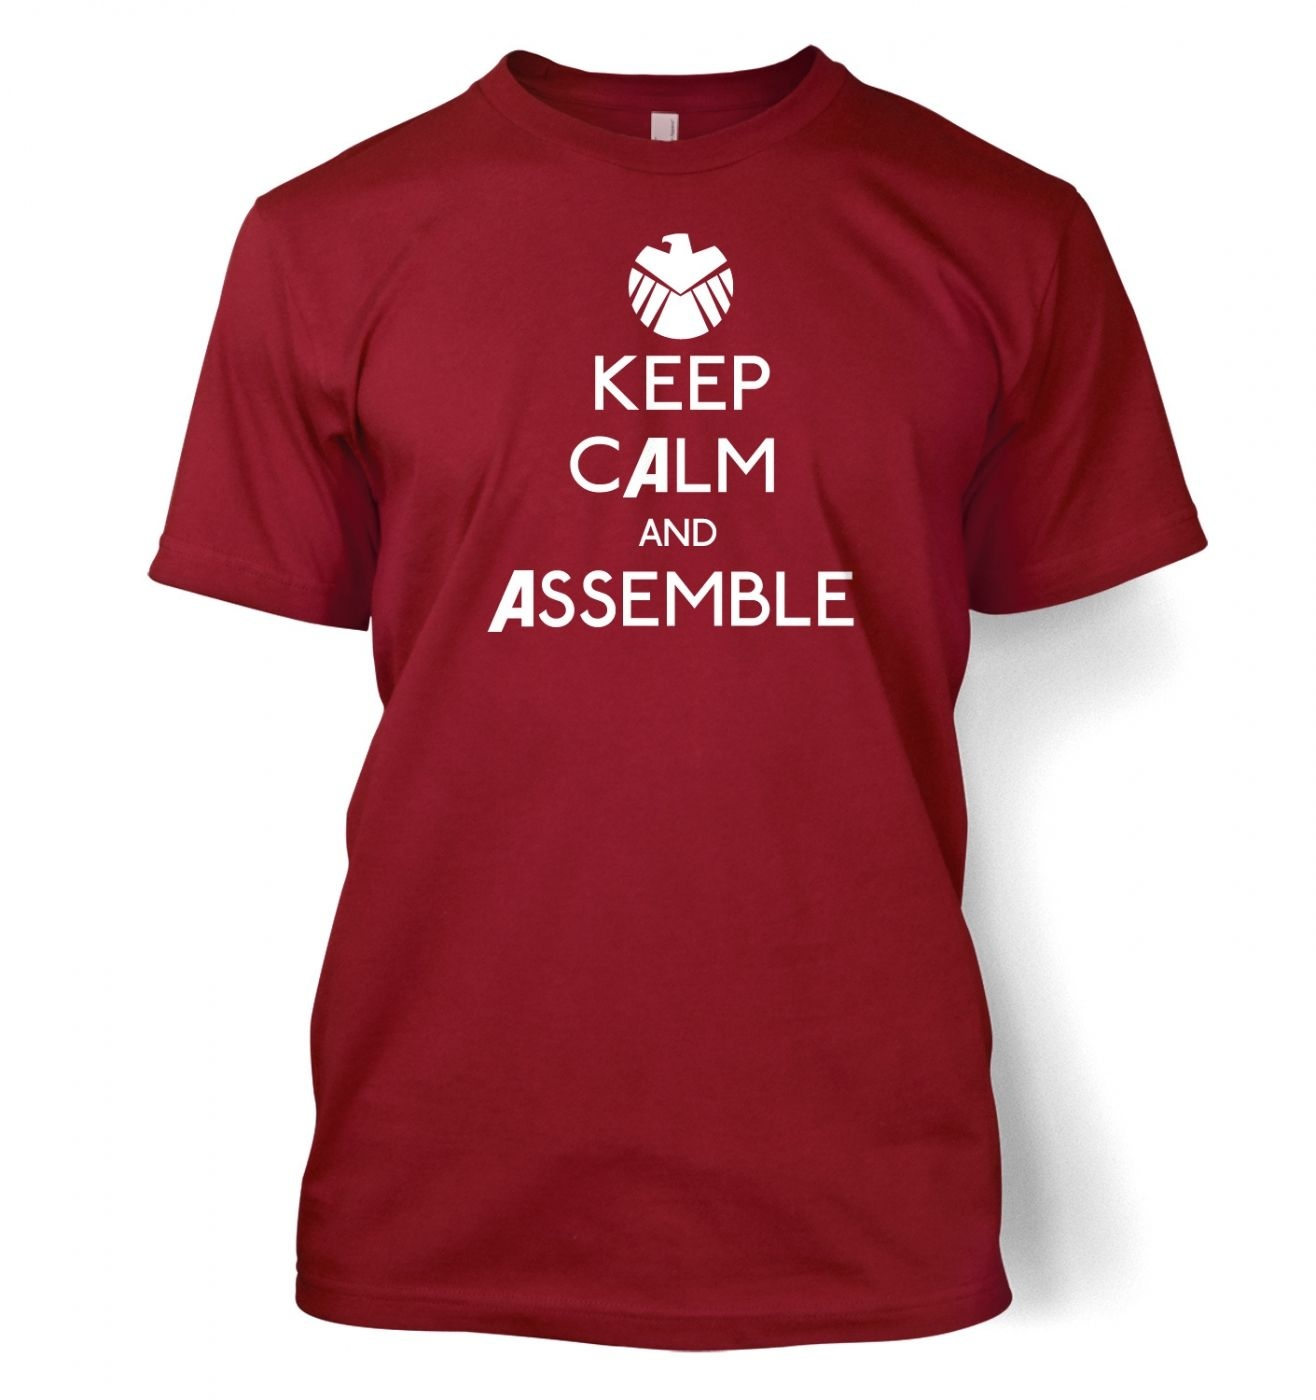 Keep Calm And Assemble t-shirt